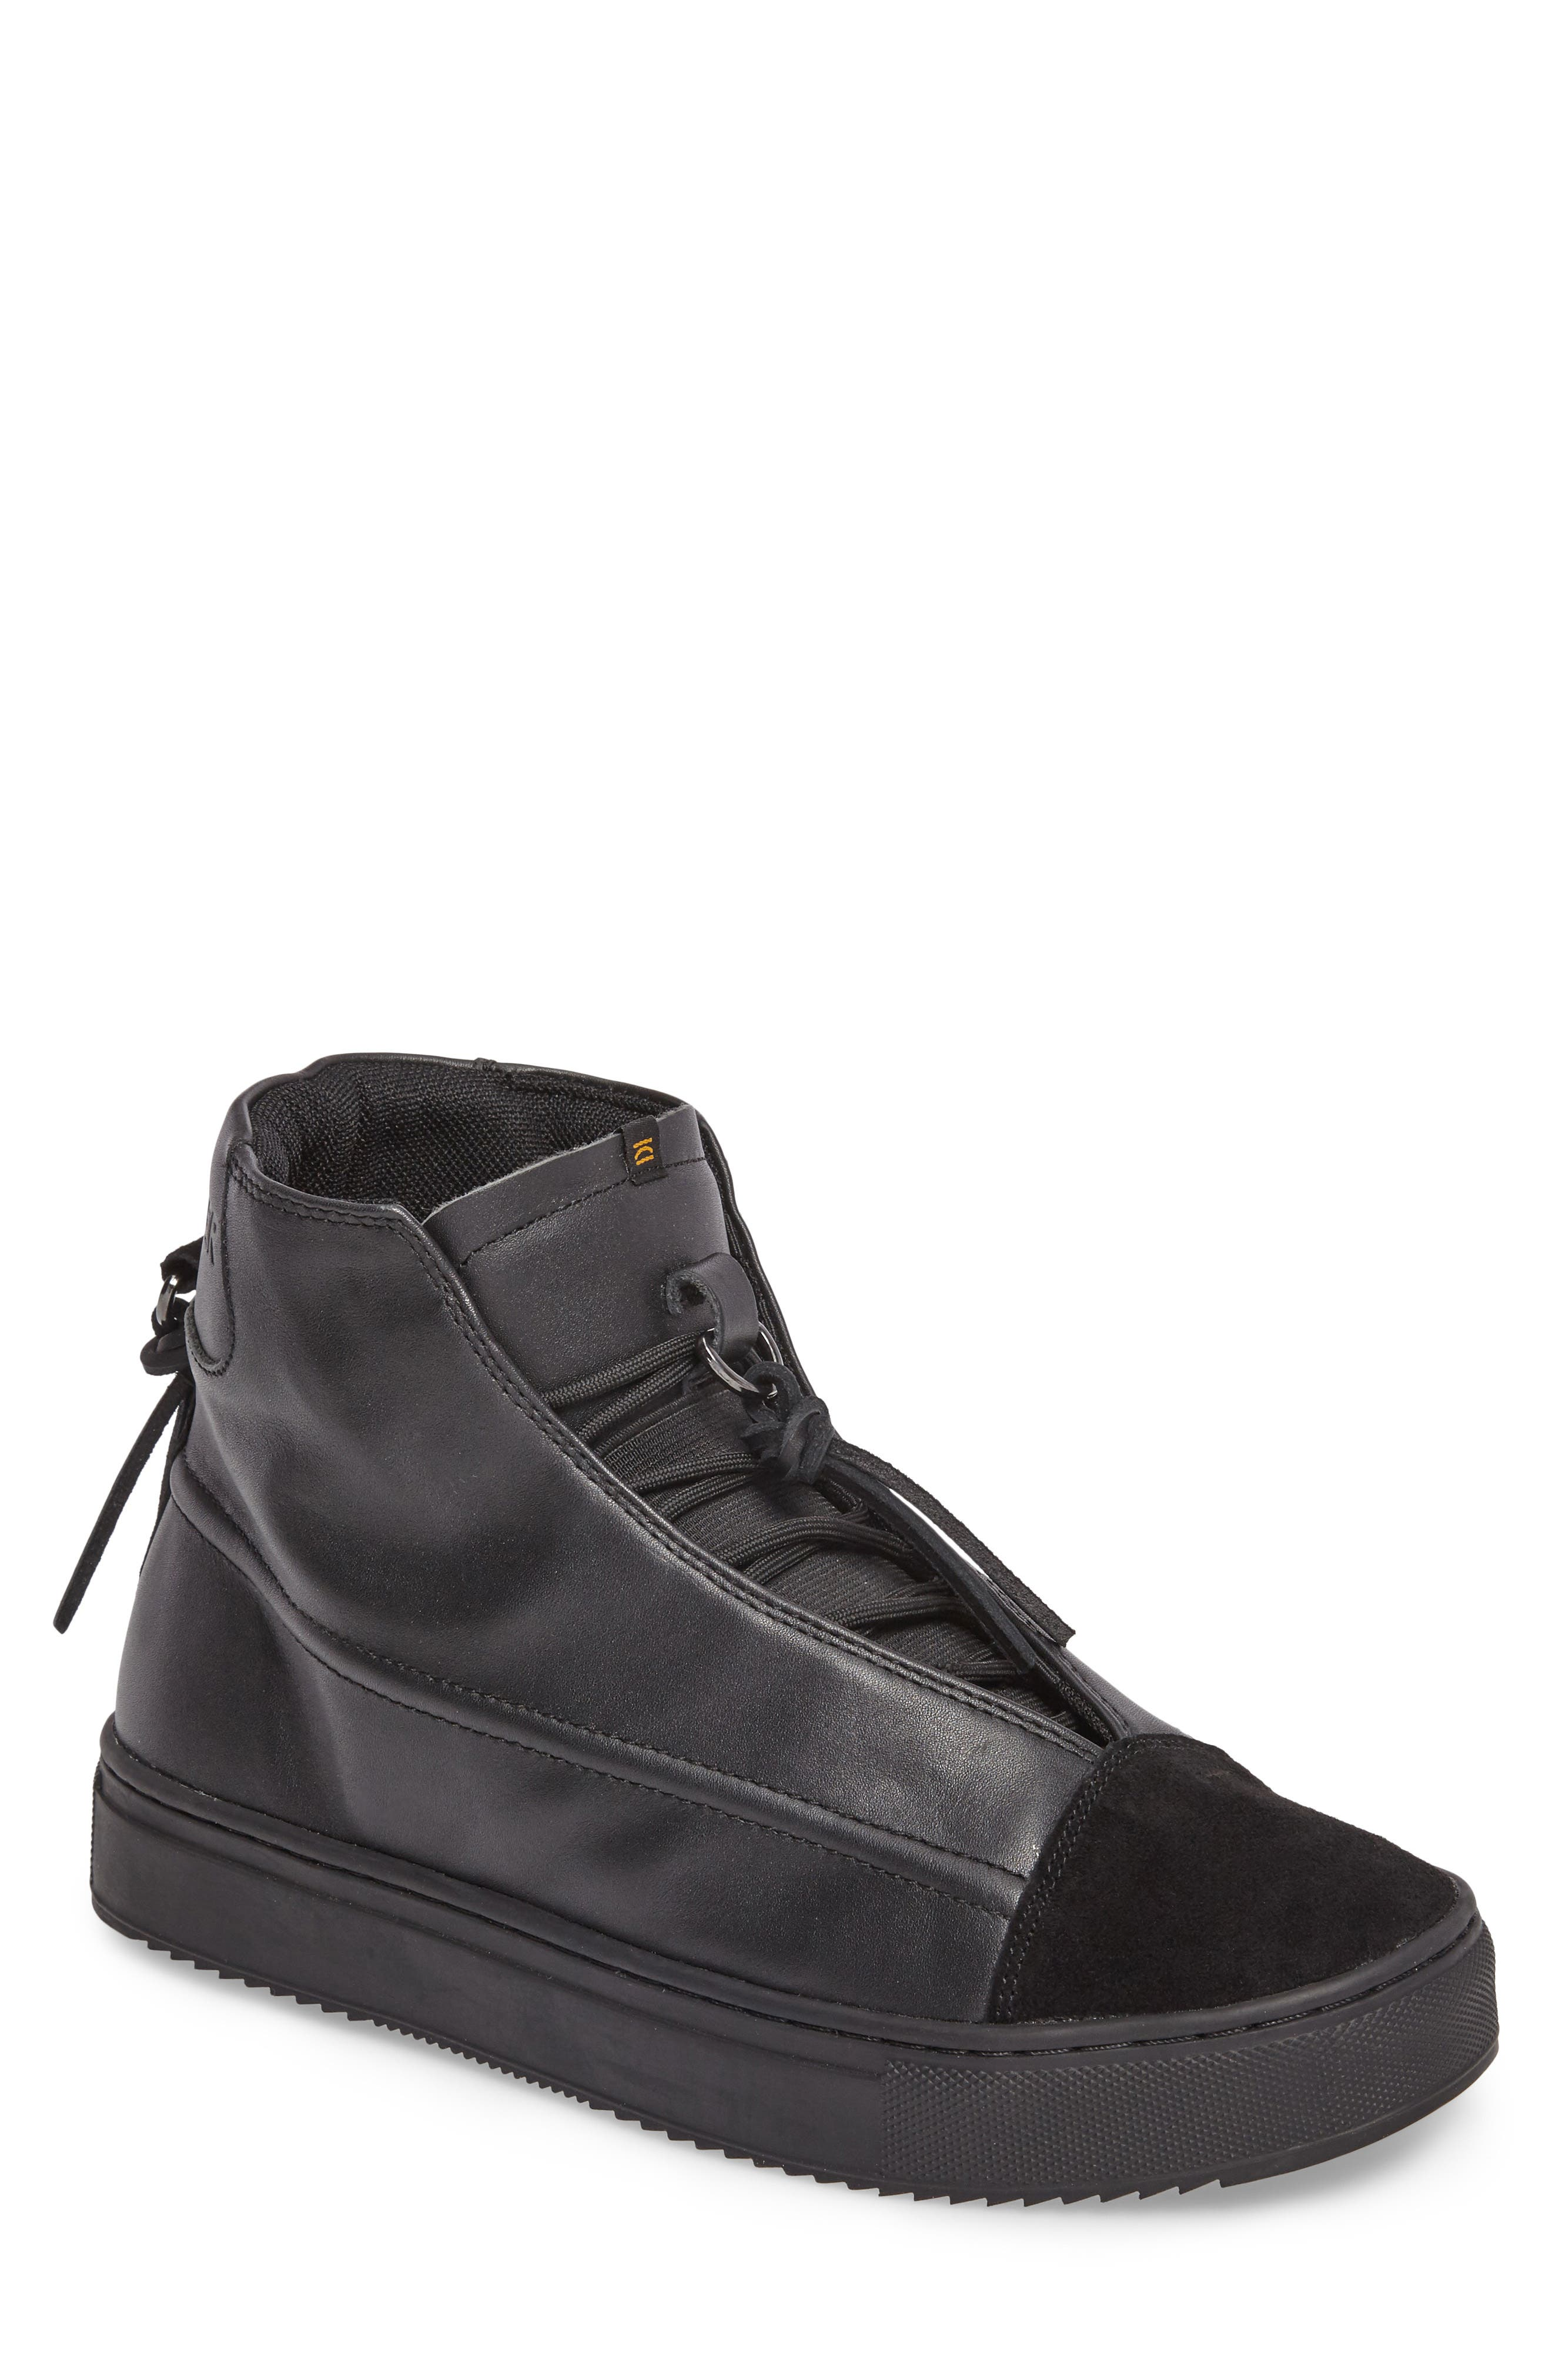 Main Image - Clearweather Sidney High Top Sneaker (Men)